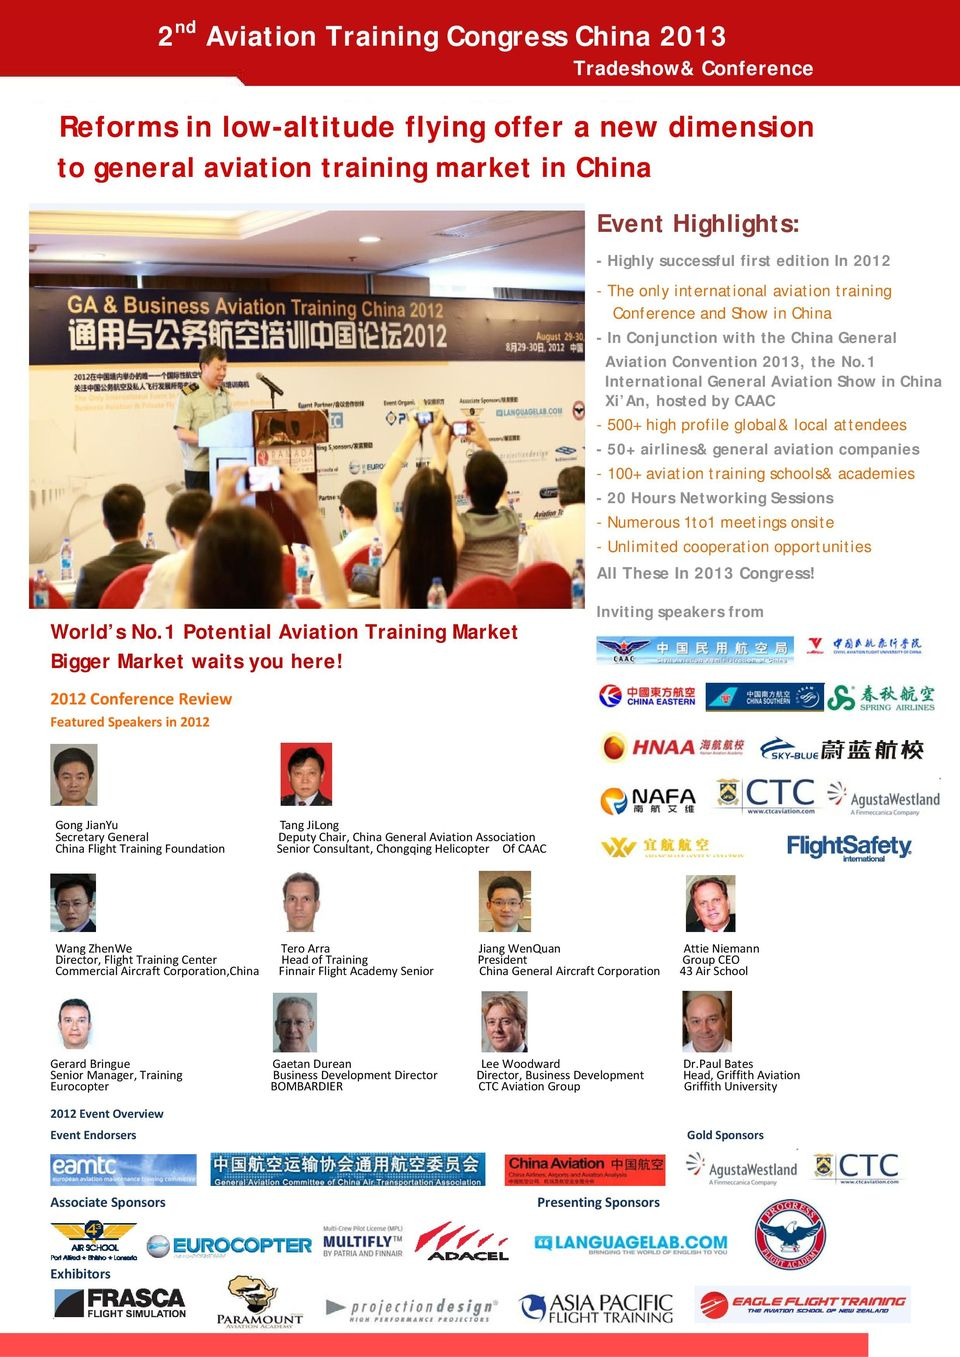 1 International General Aviation Show in China Xi An, hosted by CAAC - 500+ high profile global& local attendees - 50+ airlines& general aviation companies - 100+ aviation training schools& academies